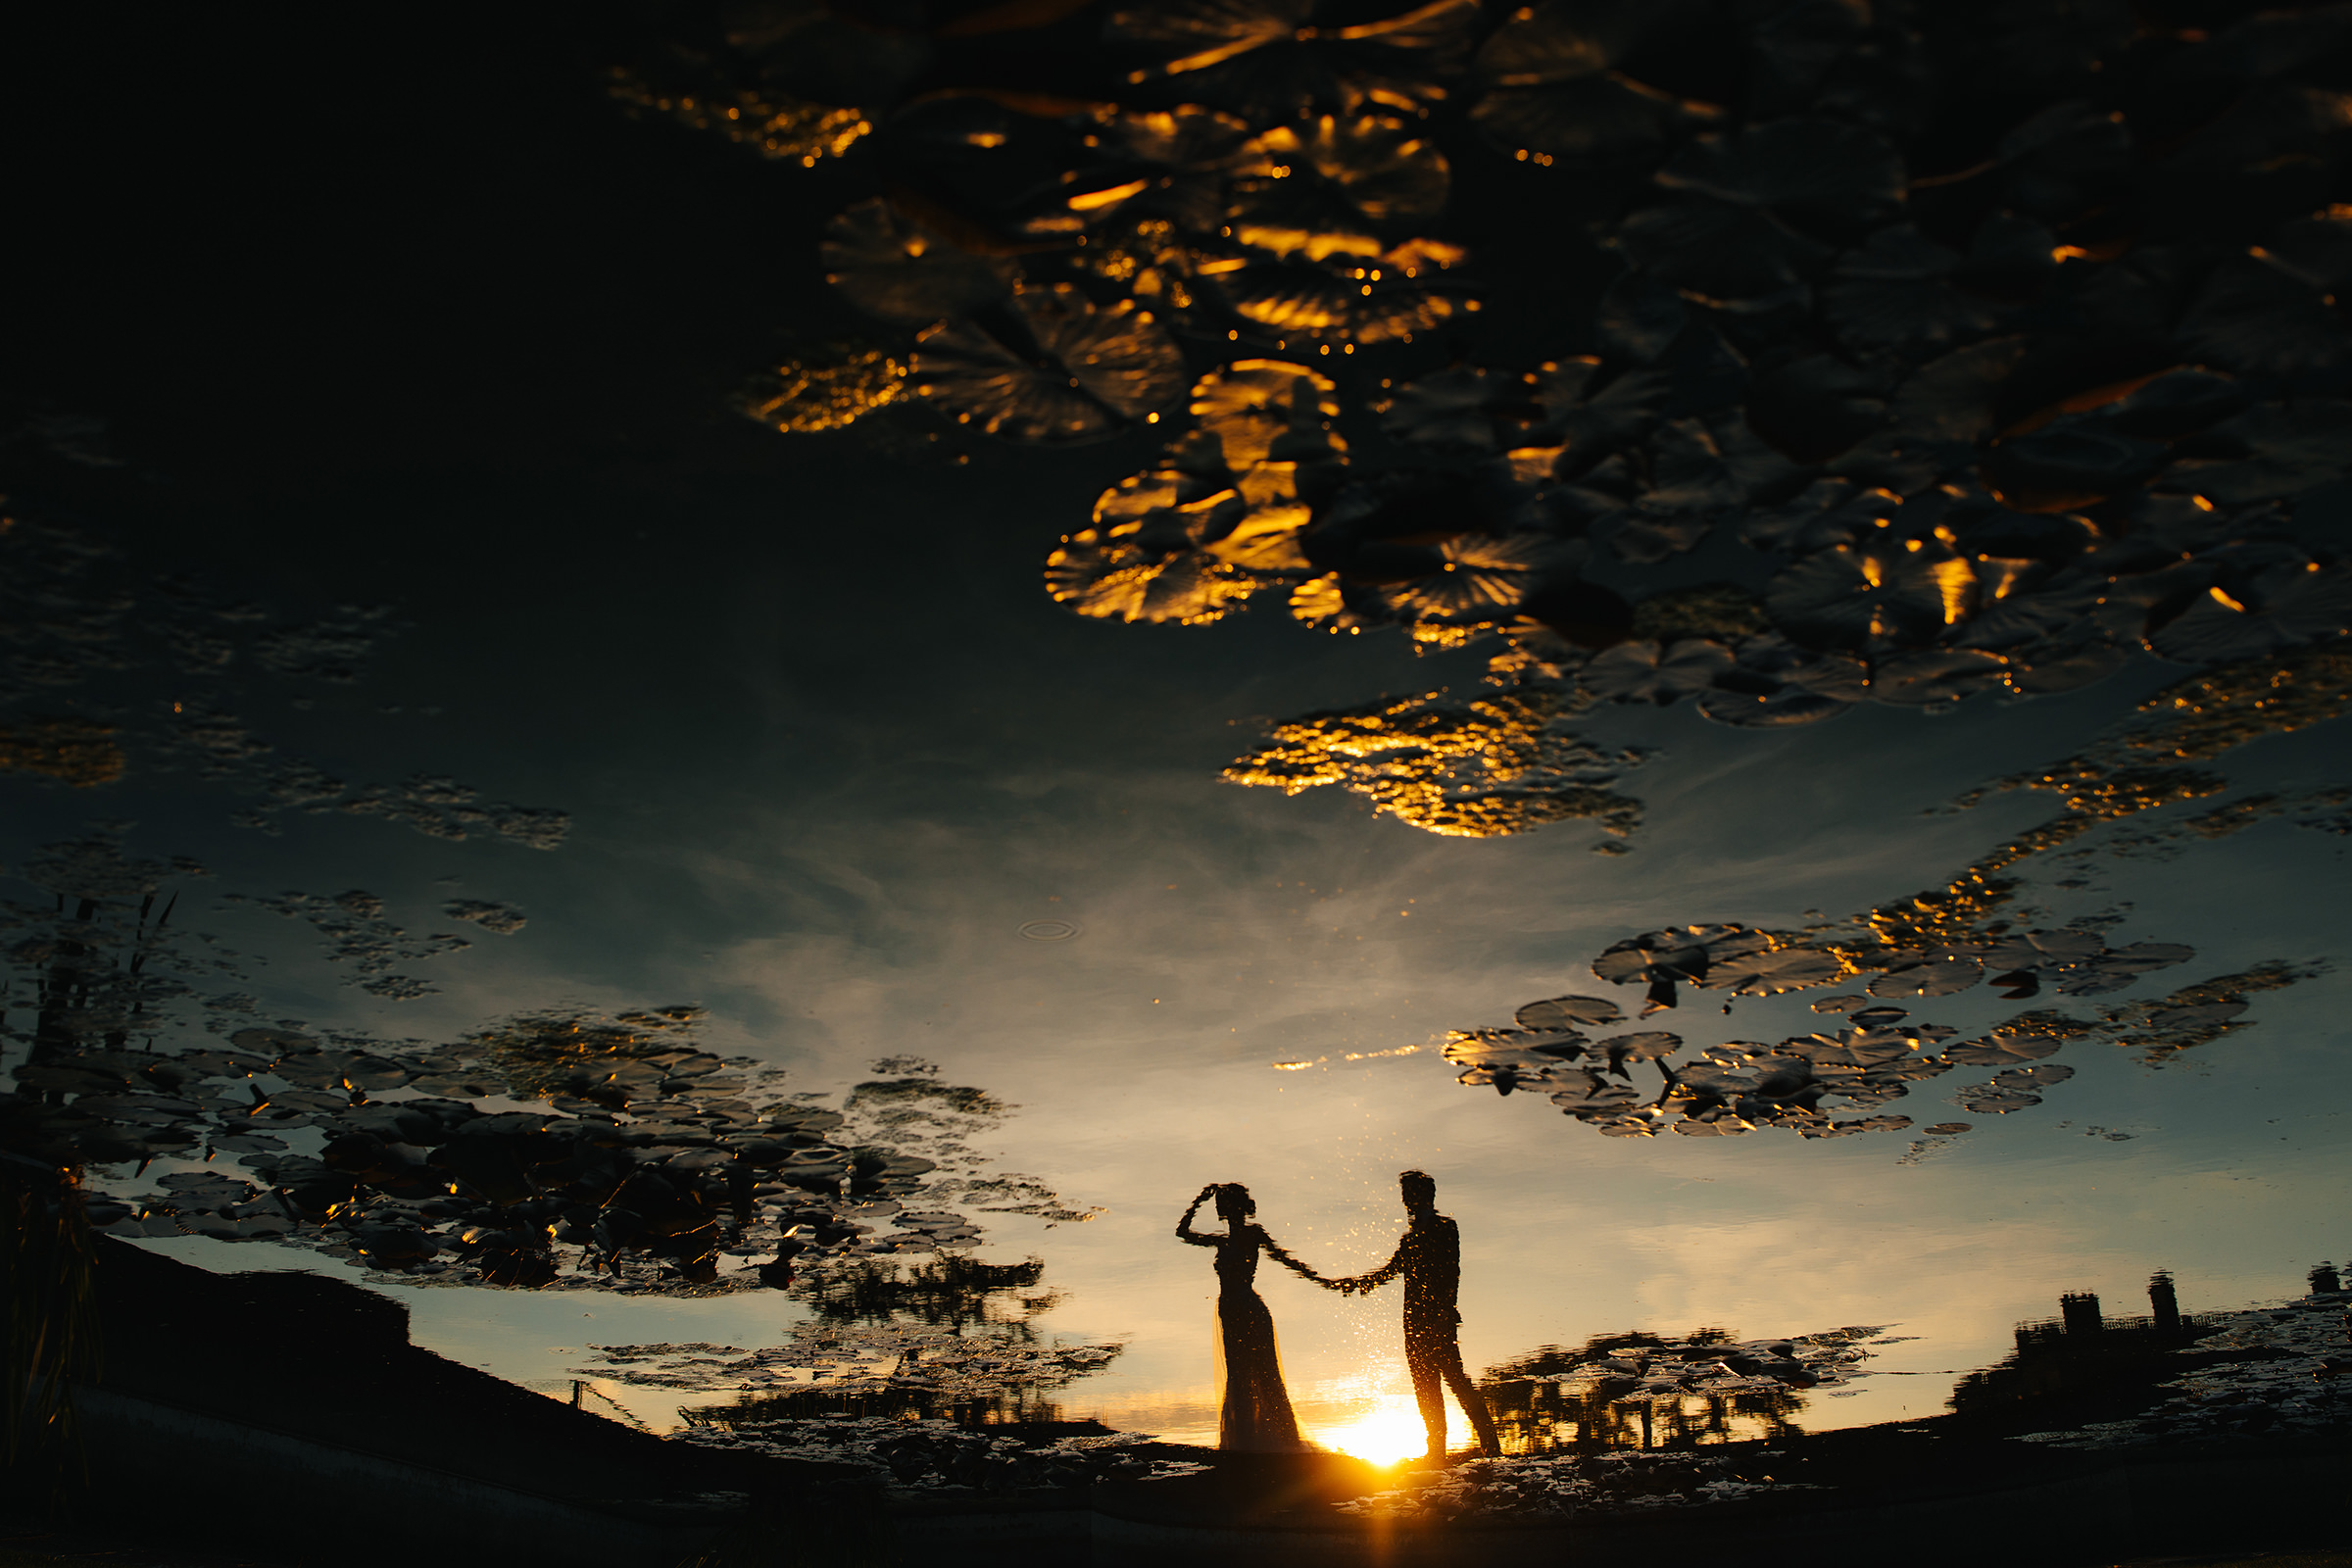 couple-silhouette-with-dramatic-lighting-reflected-at-hedsor-house-taplow-uk-the-crawleys